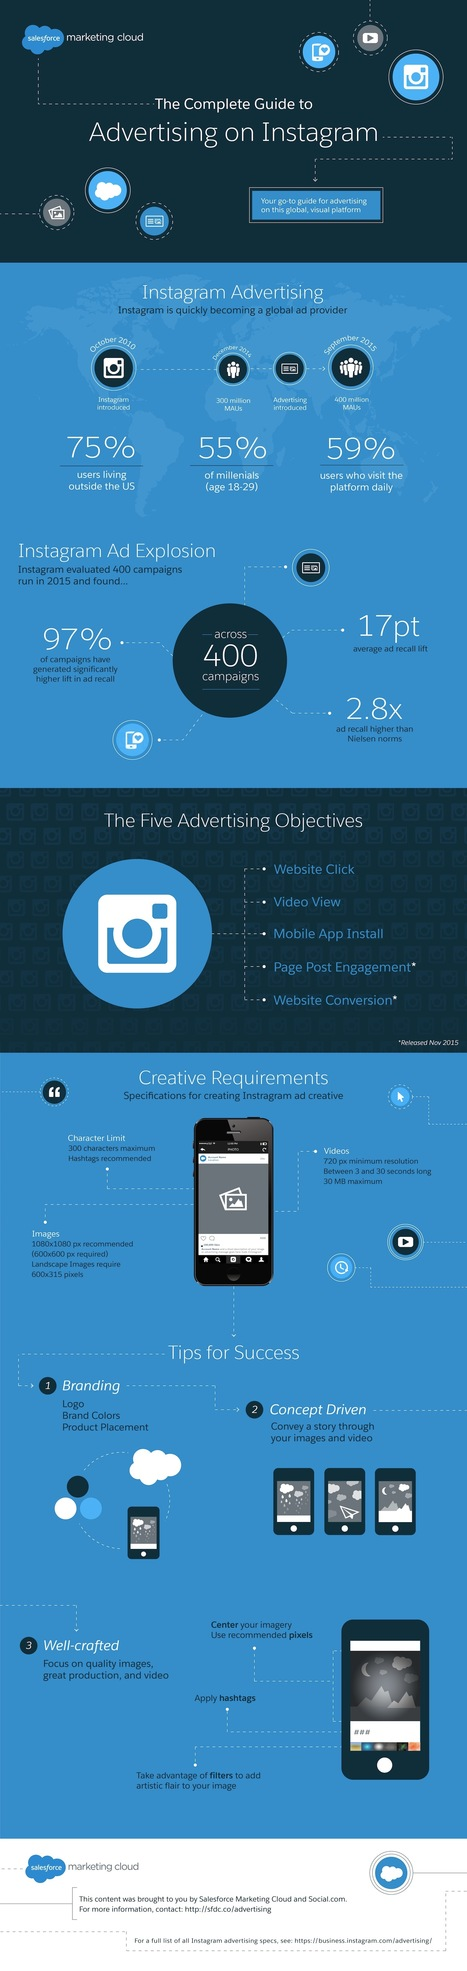 The Complete guide to Advertising on Instagram [Infographic] | Daily Infographic | Linkingbrand: Social Media | Scoop.it